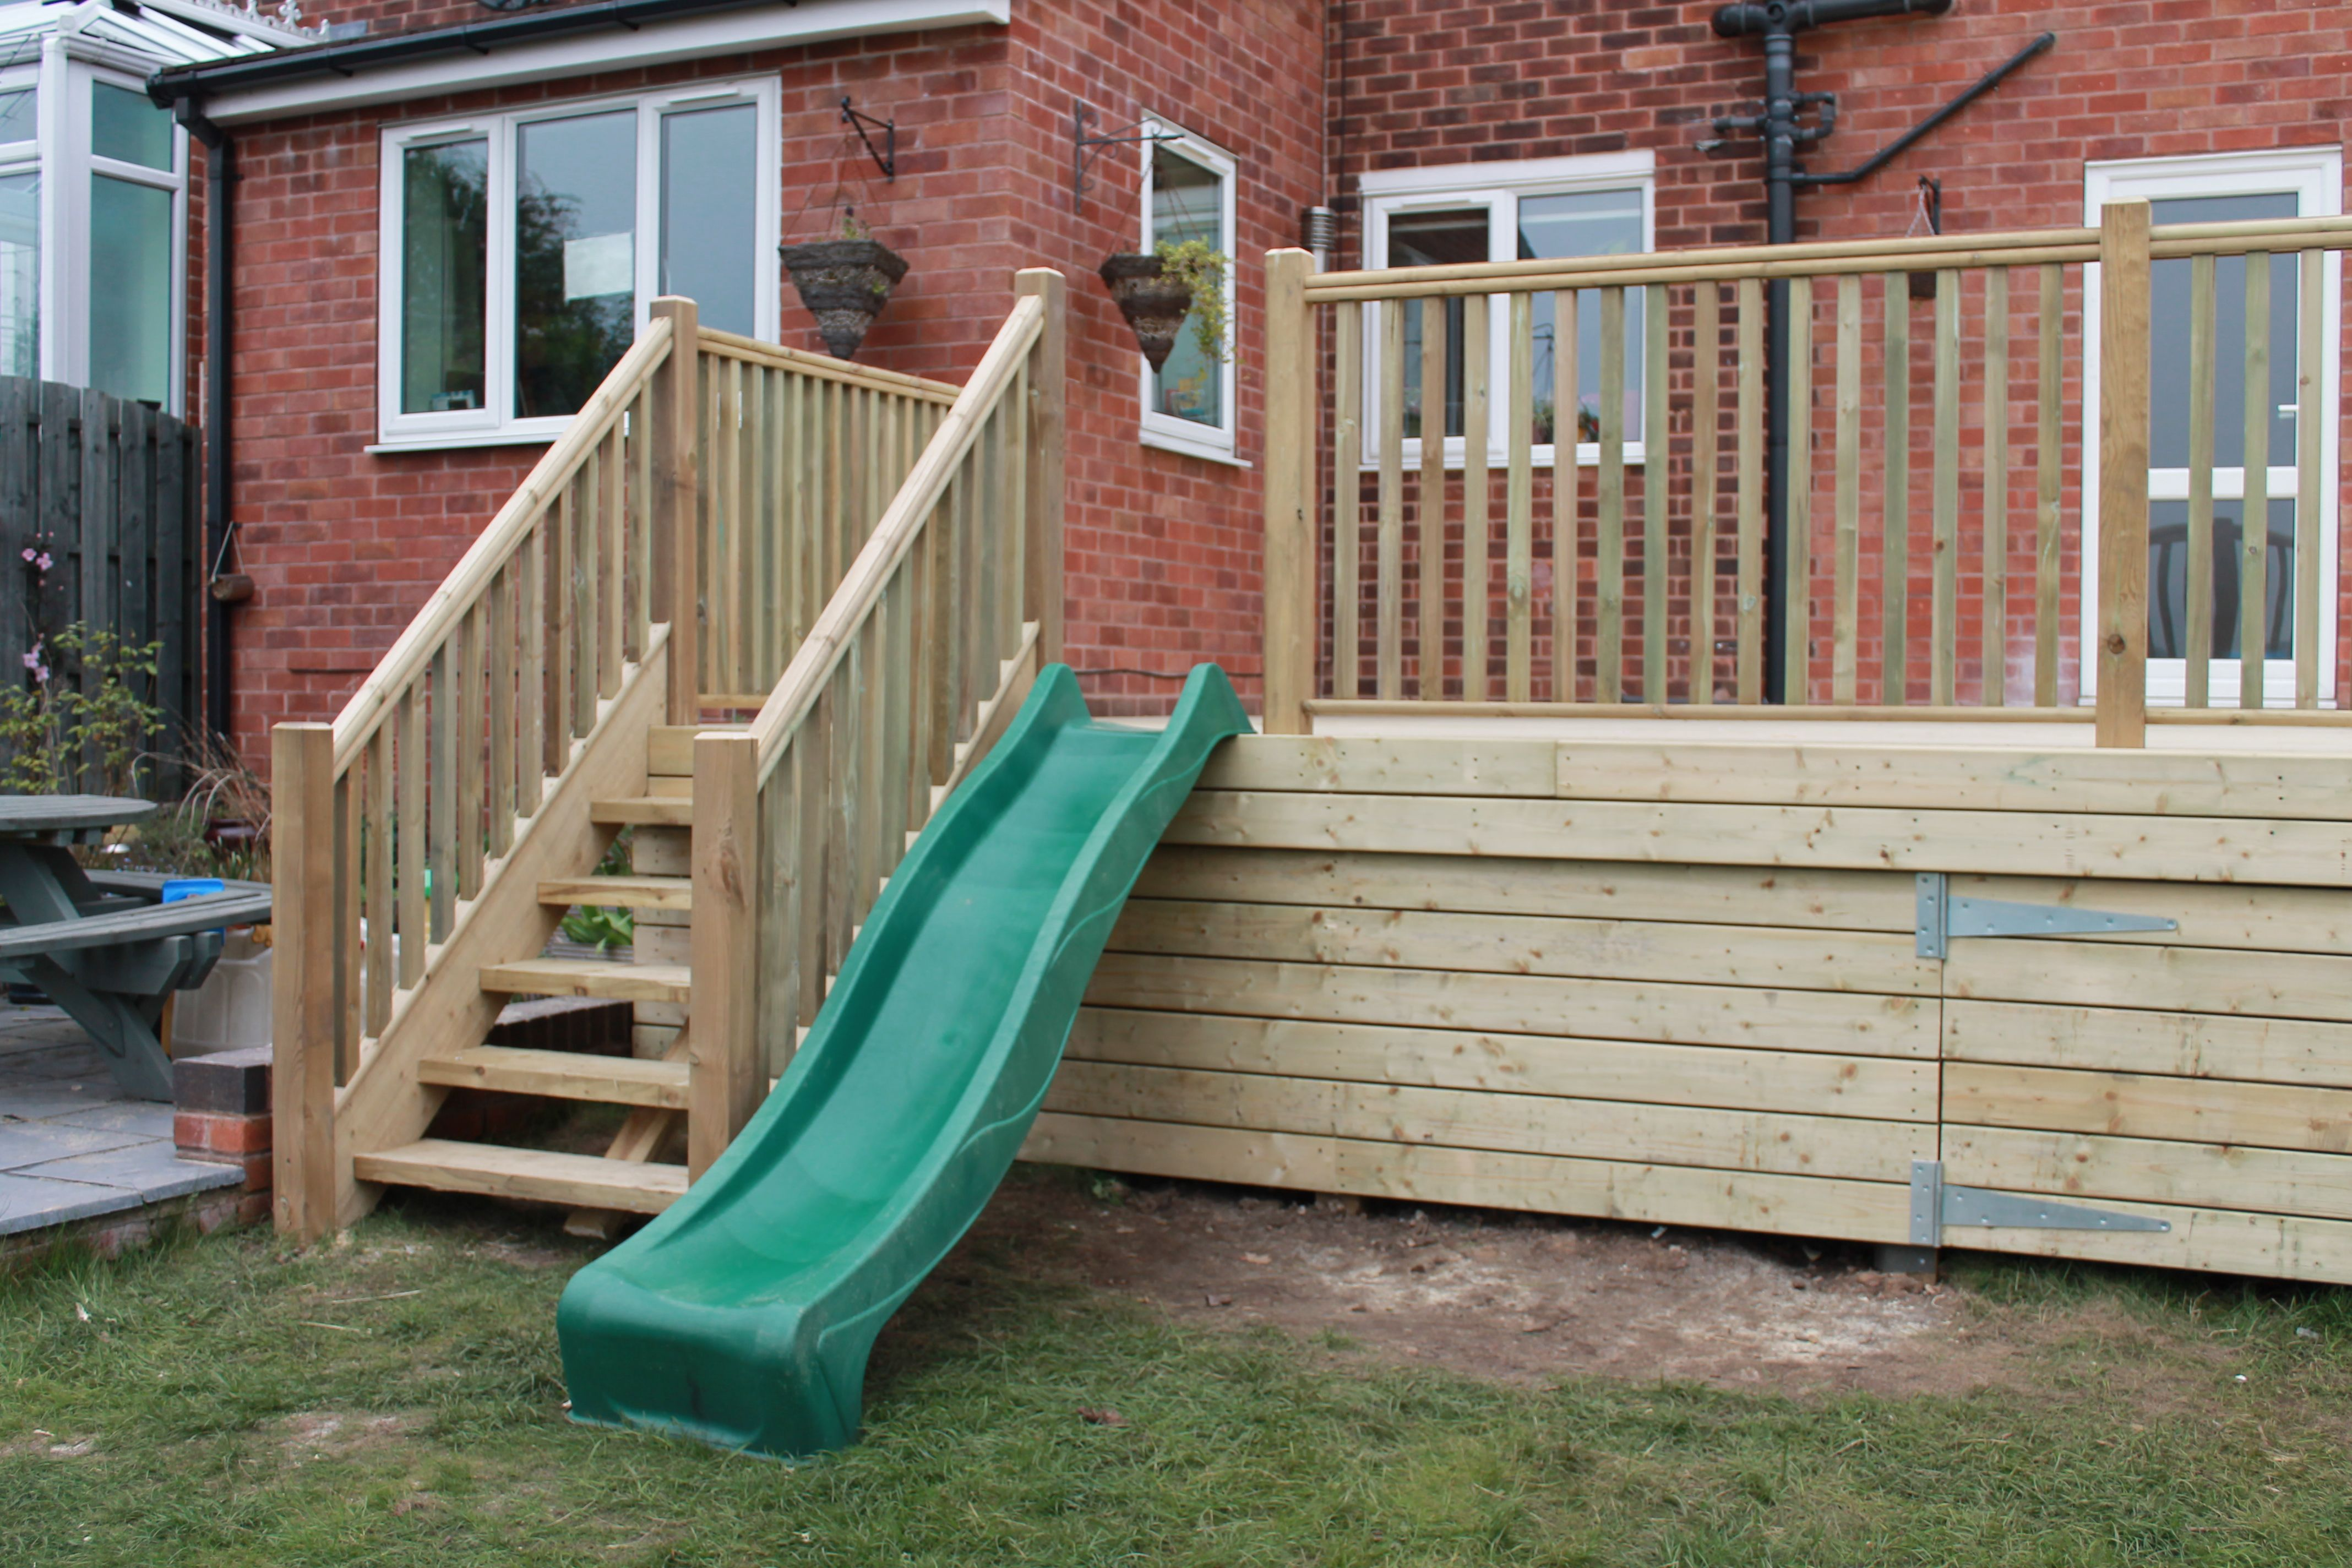 Garden Design Decking Areas raised decking with childrens slide play area completed in